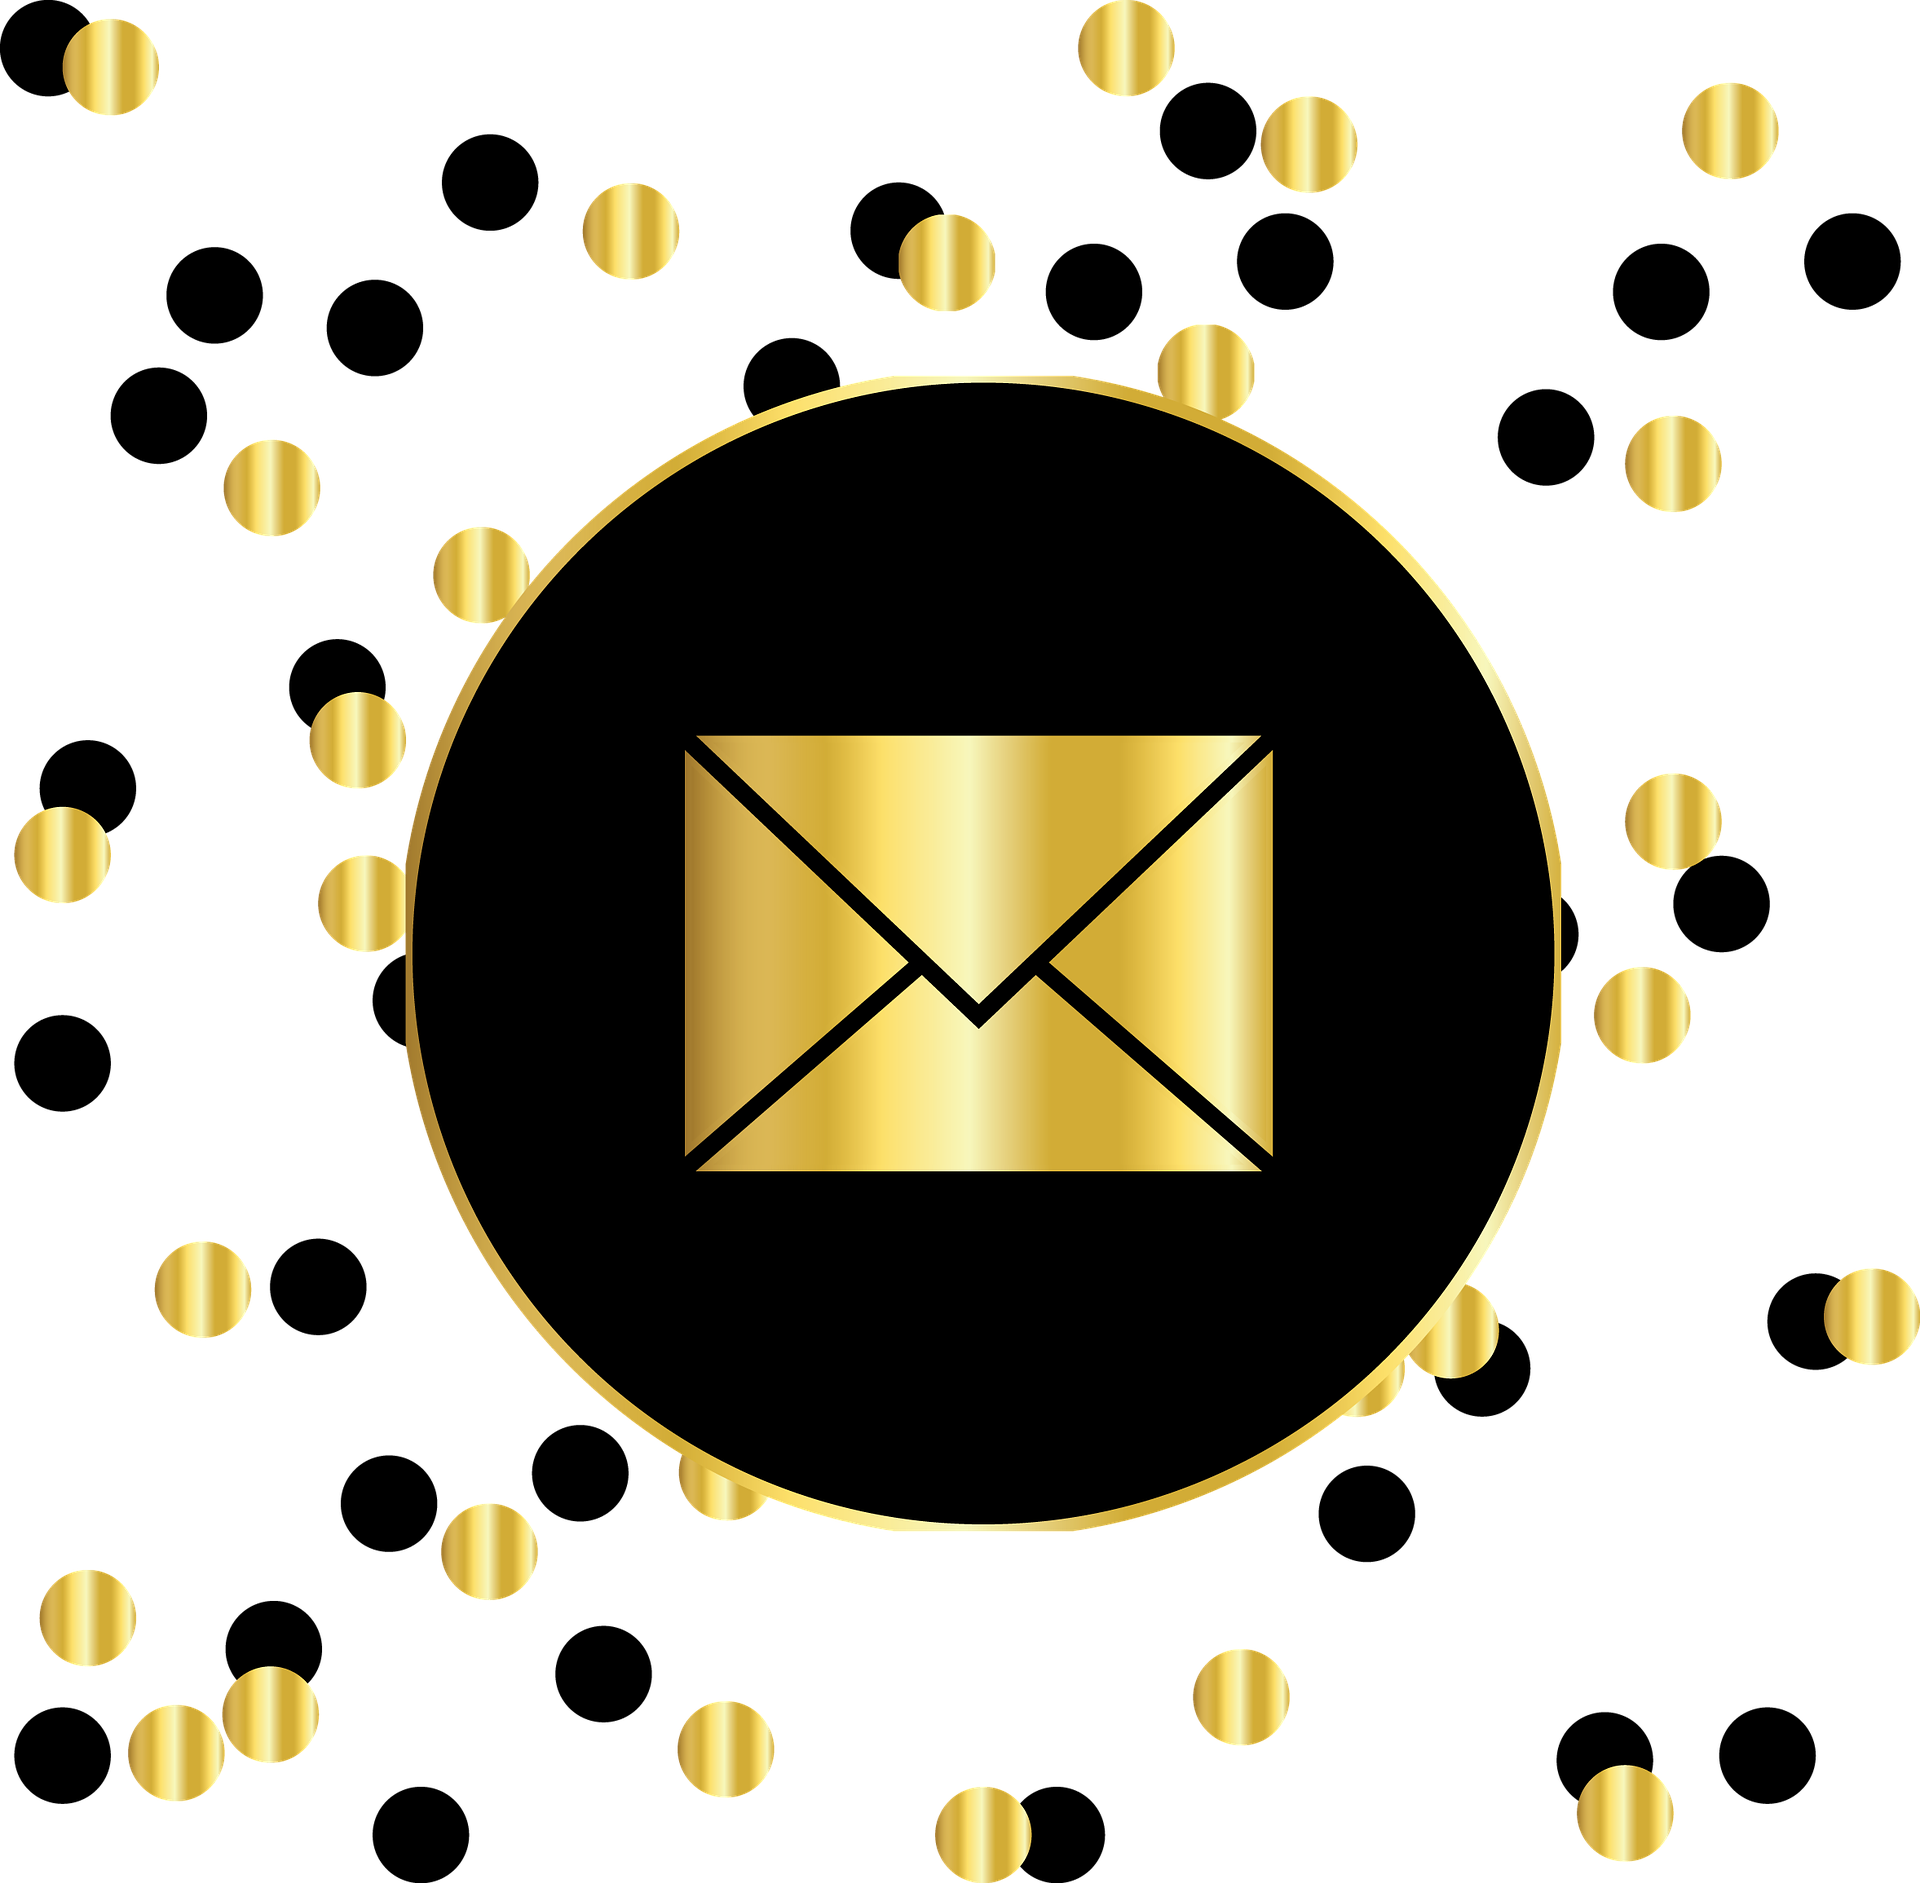 Email clipart means communication. Marketing is essential to